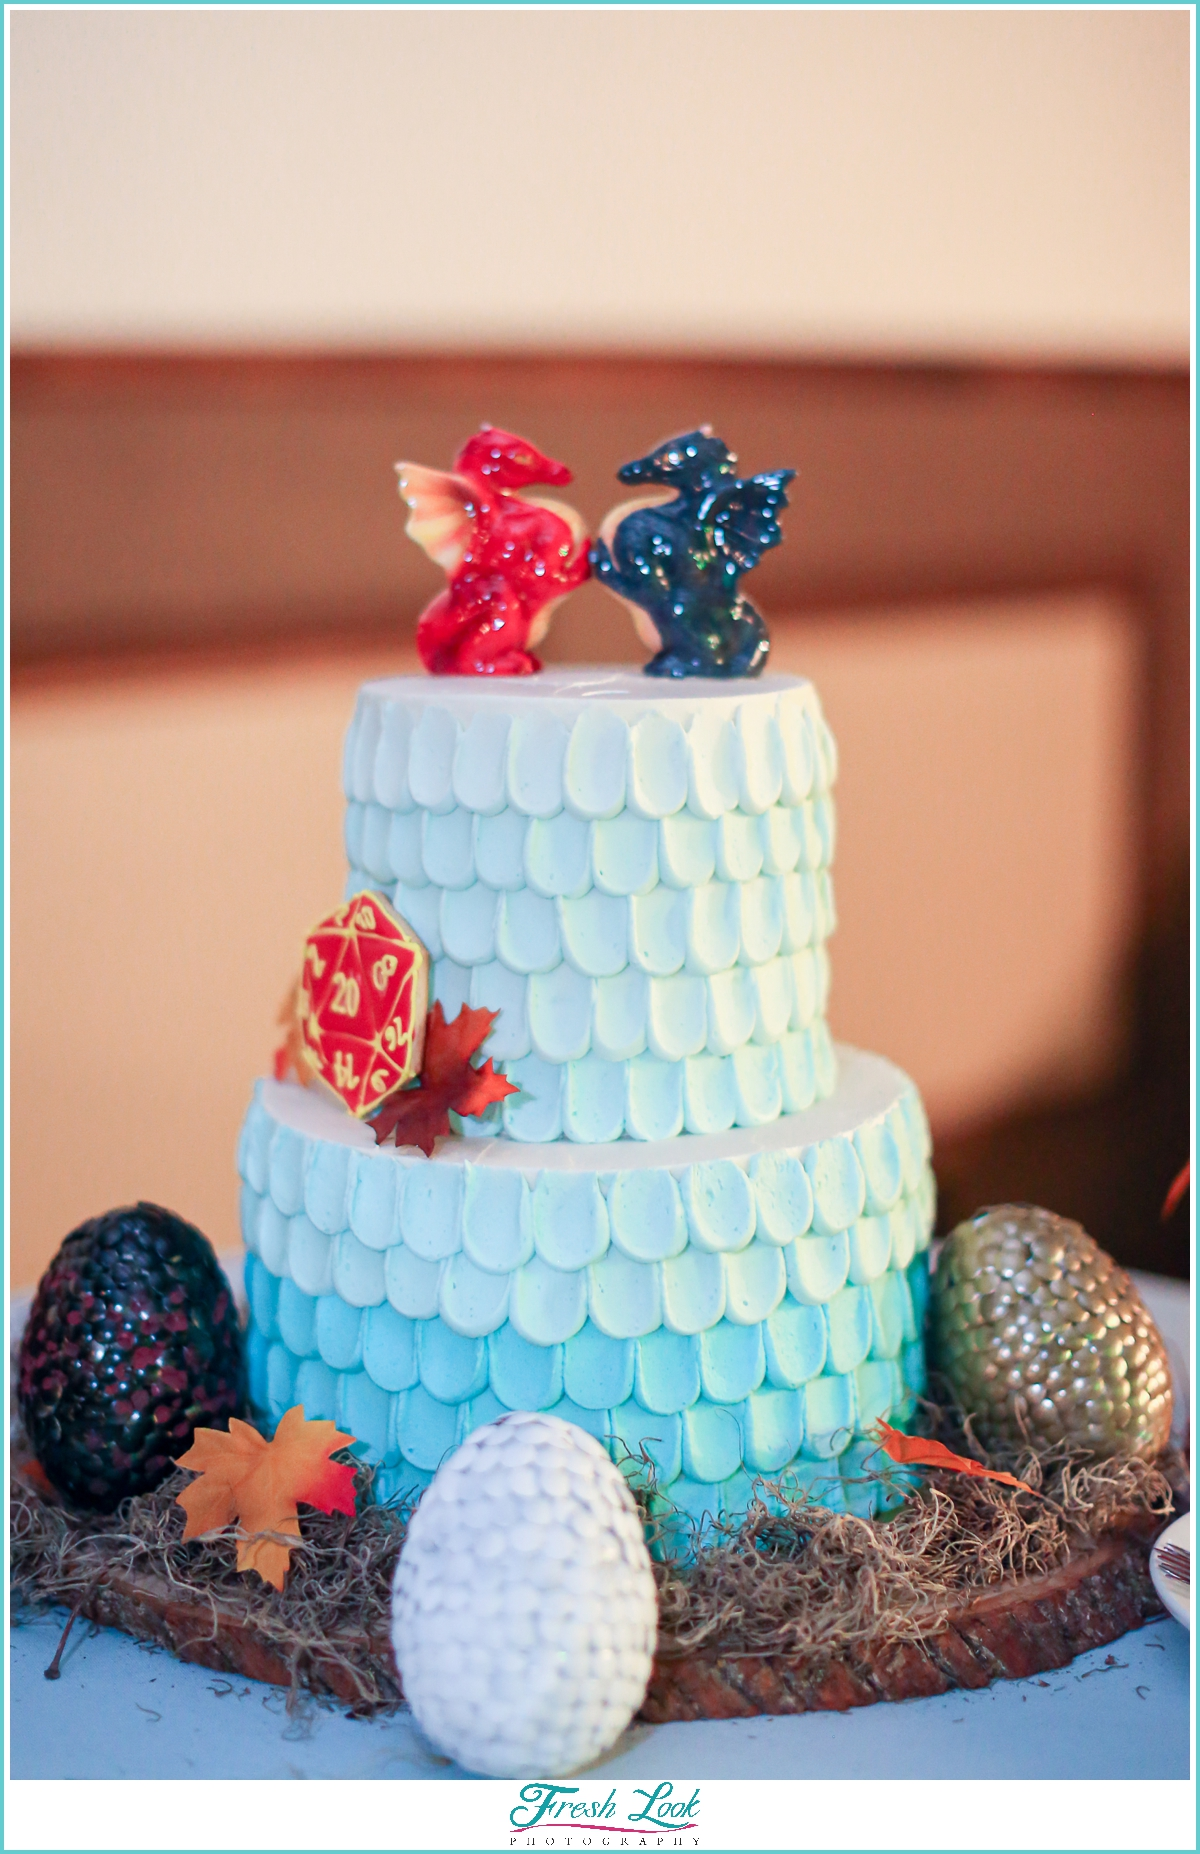 Epic dragon wedding cake